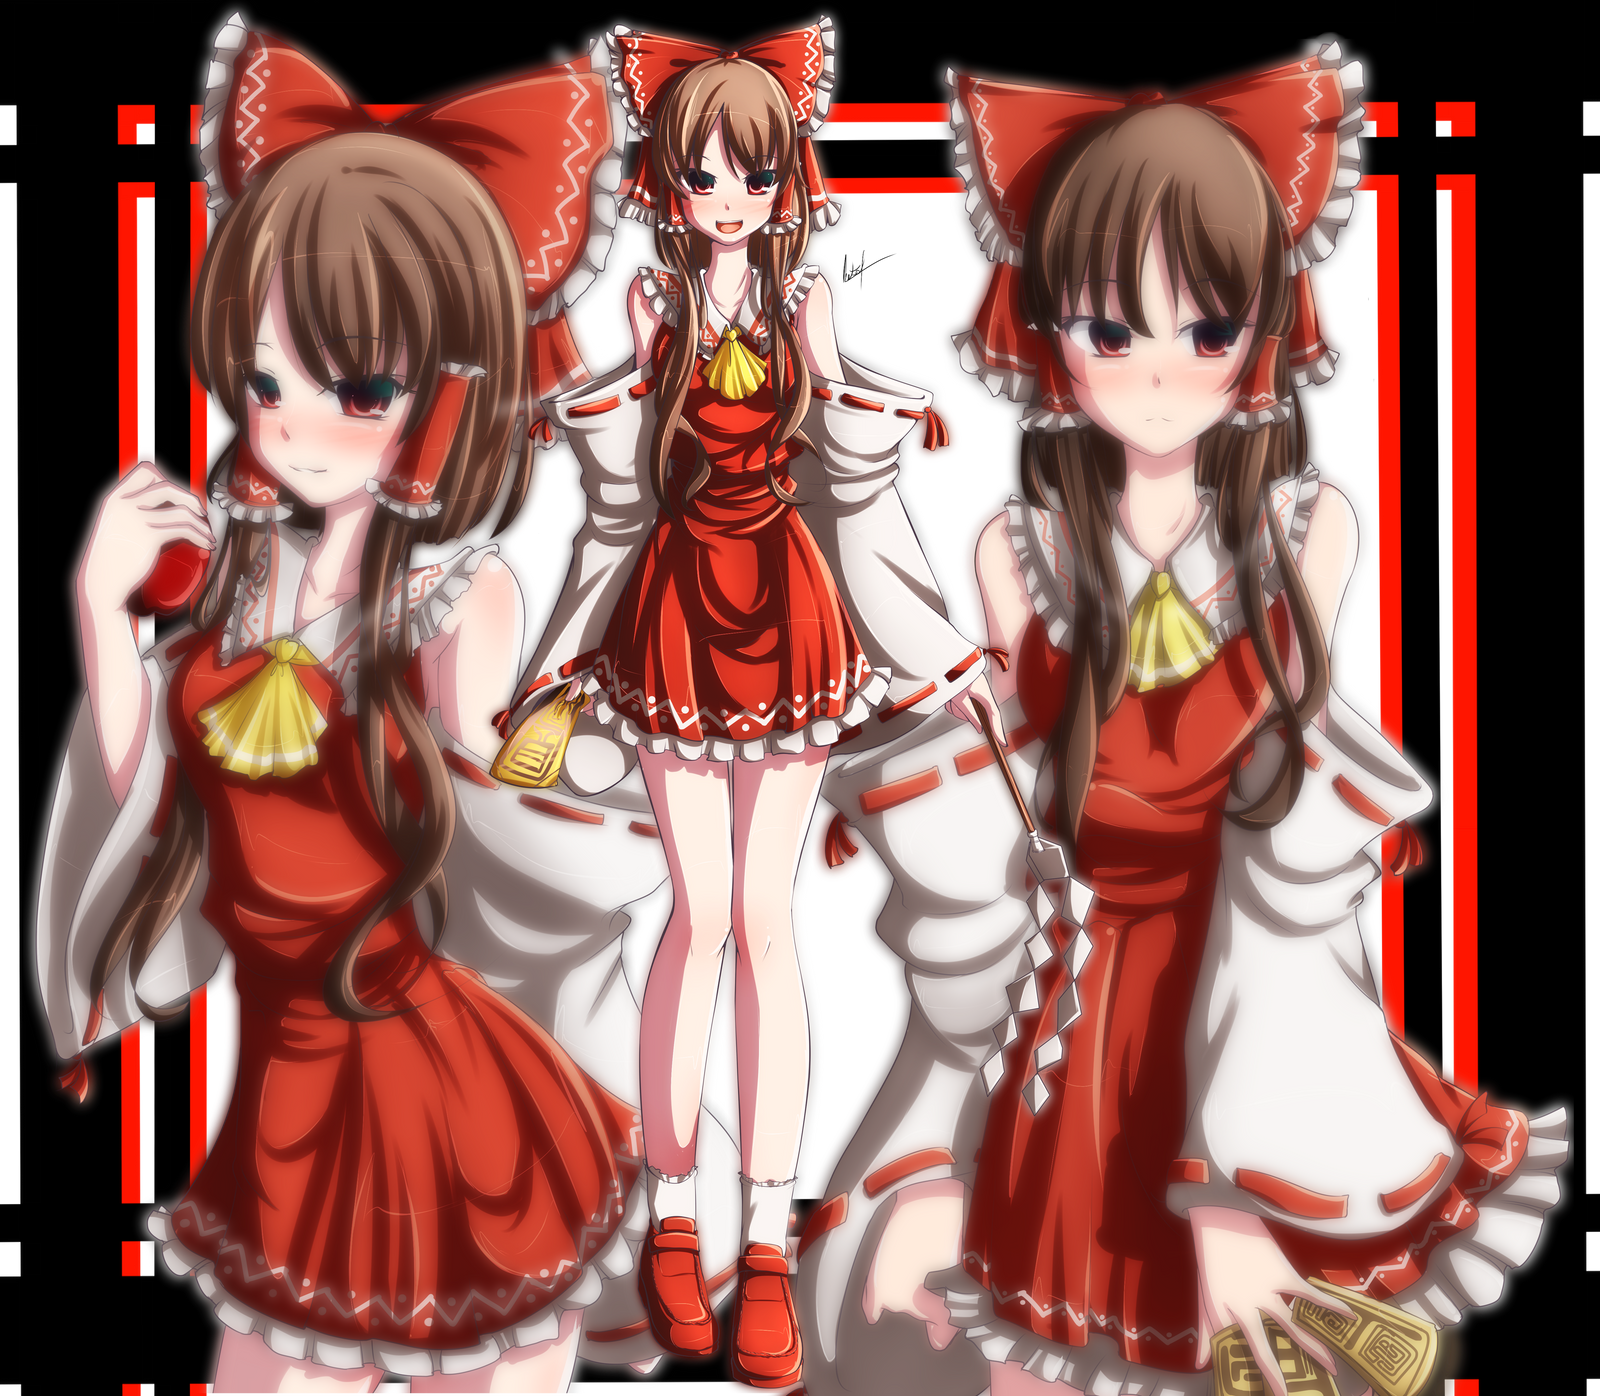 hakurei reimu, final. 100th digital drawing on DA by ImKyonYuu